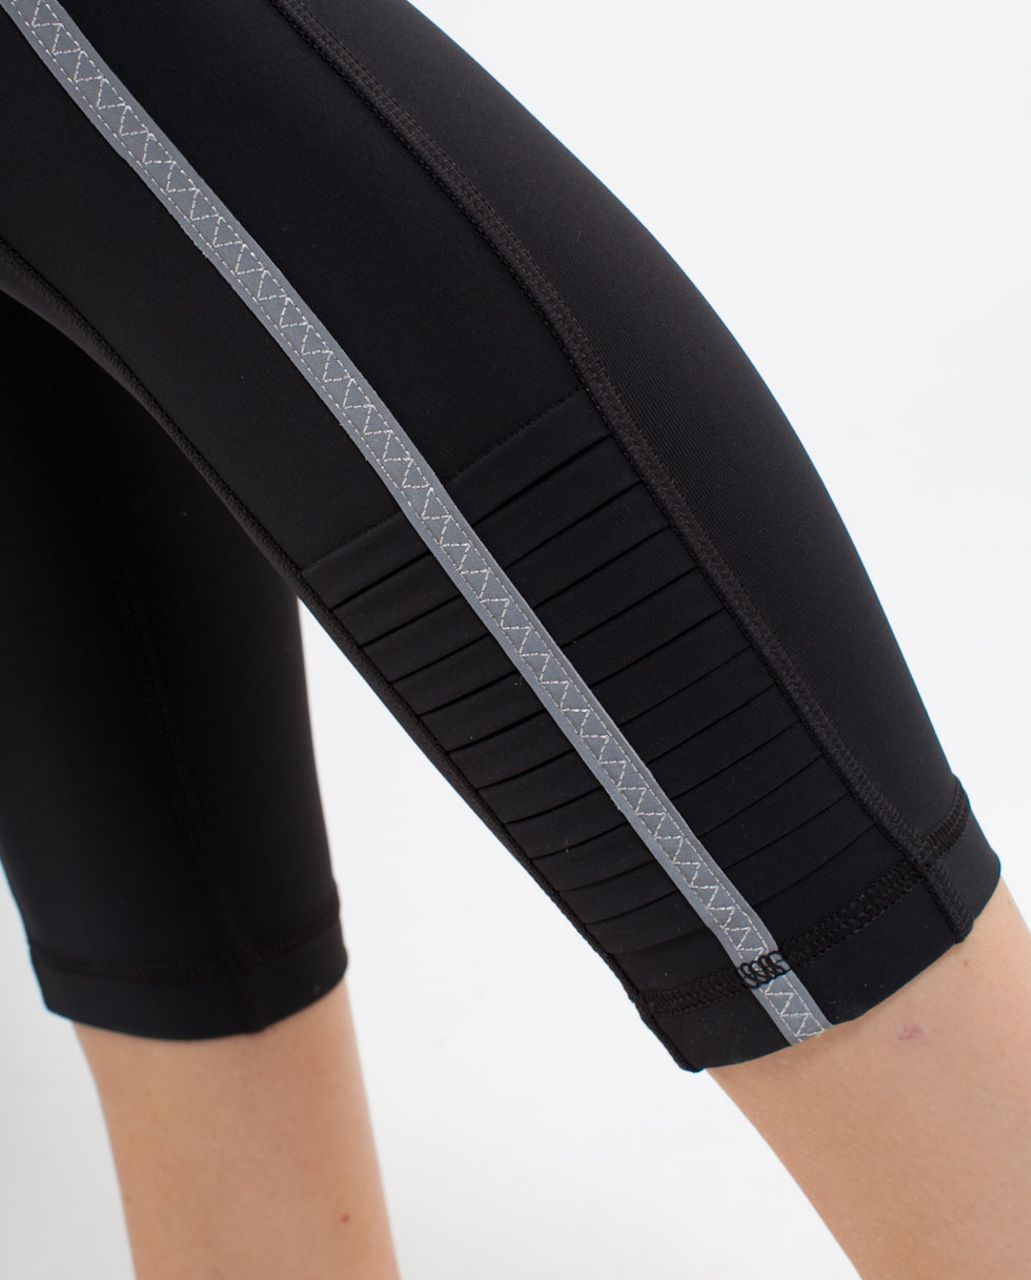 Lululemon Run:  Back On Track Crop - Deep Coal /  Silver Spoon White Bold Stripe /  Silver Spoon